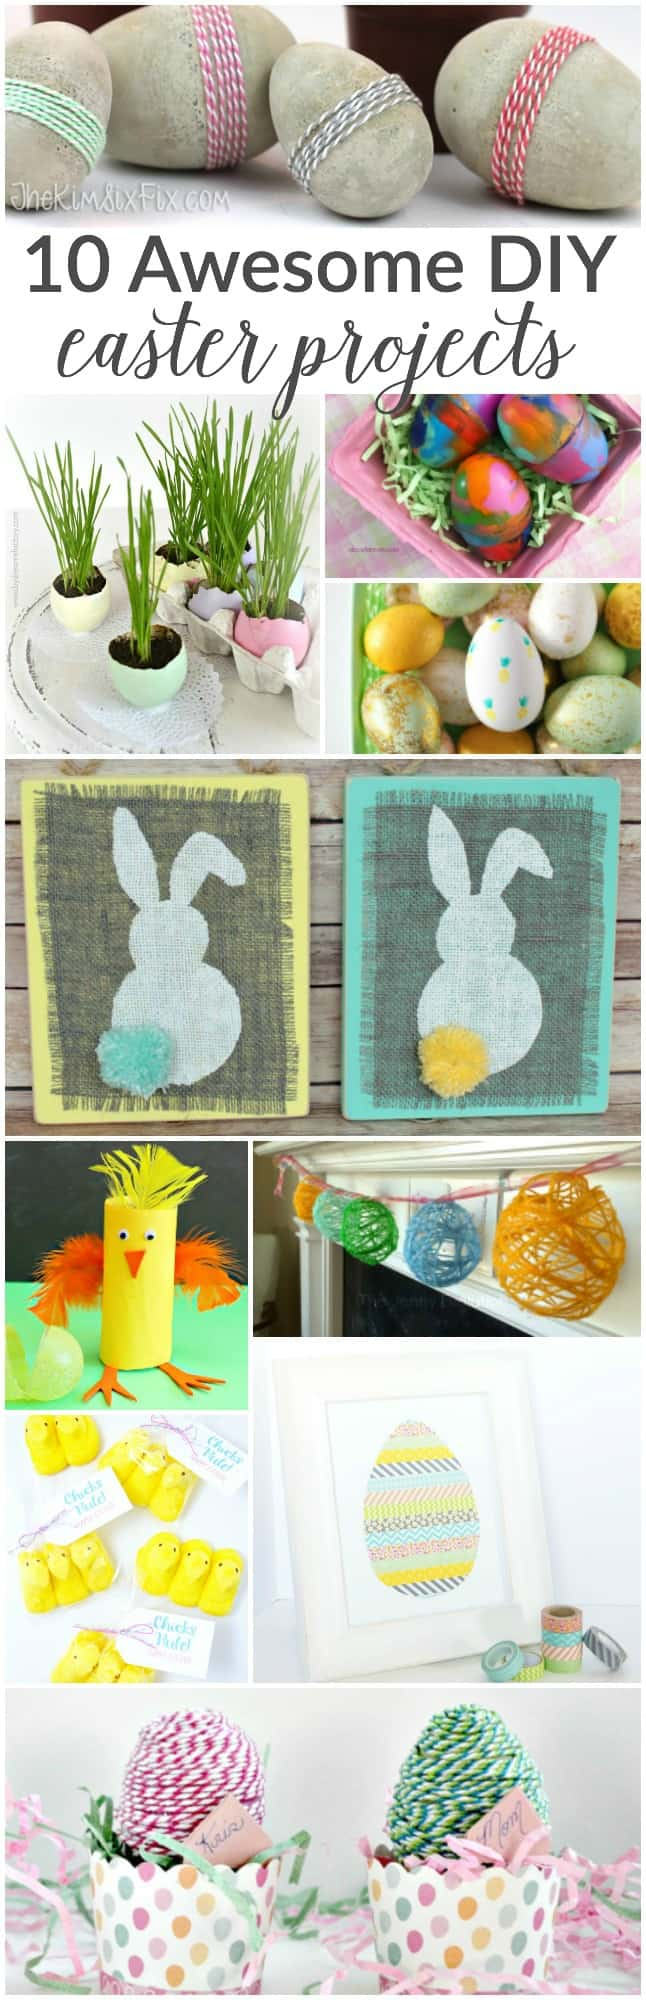 10-Amazing-Easter-DIY-Projects-2